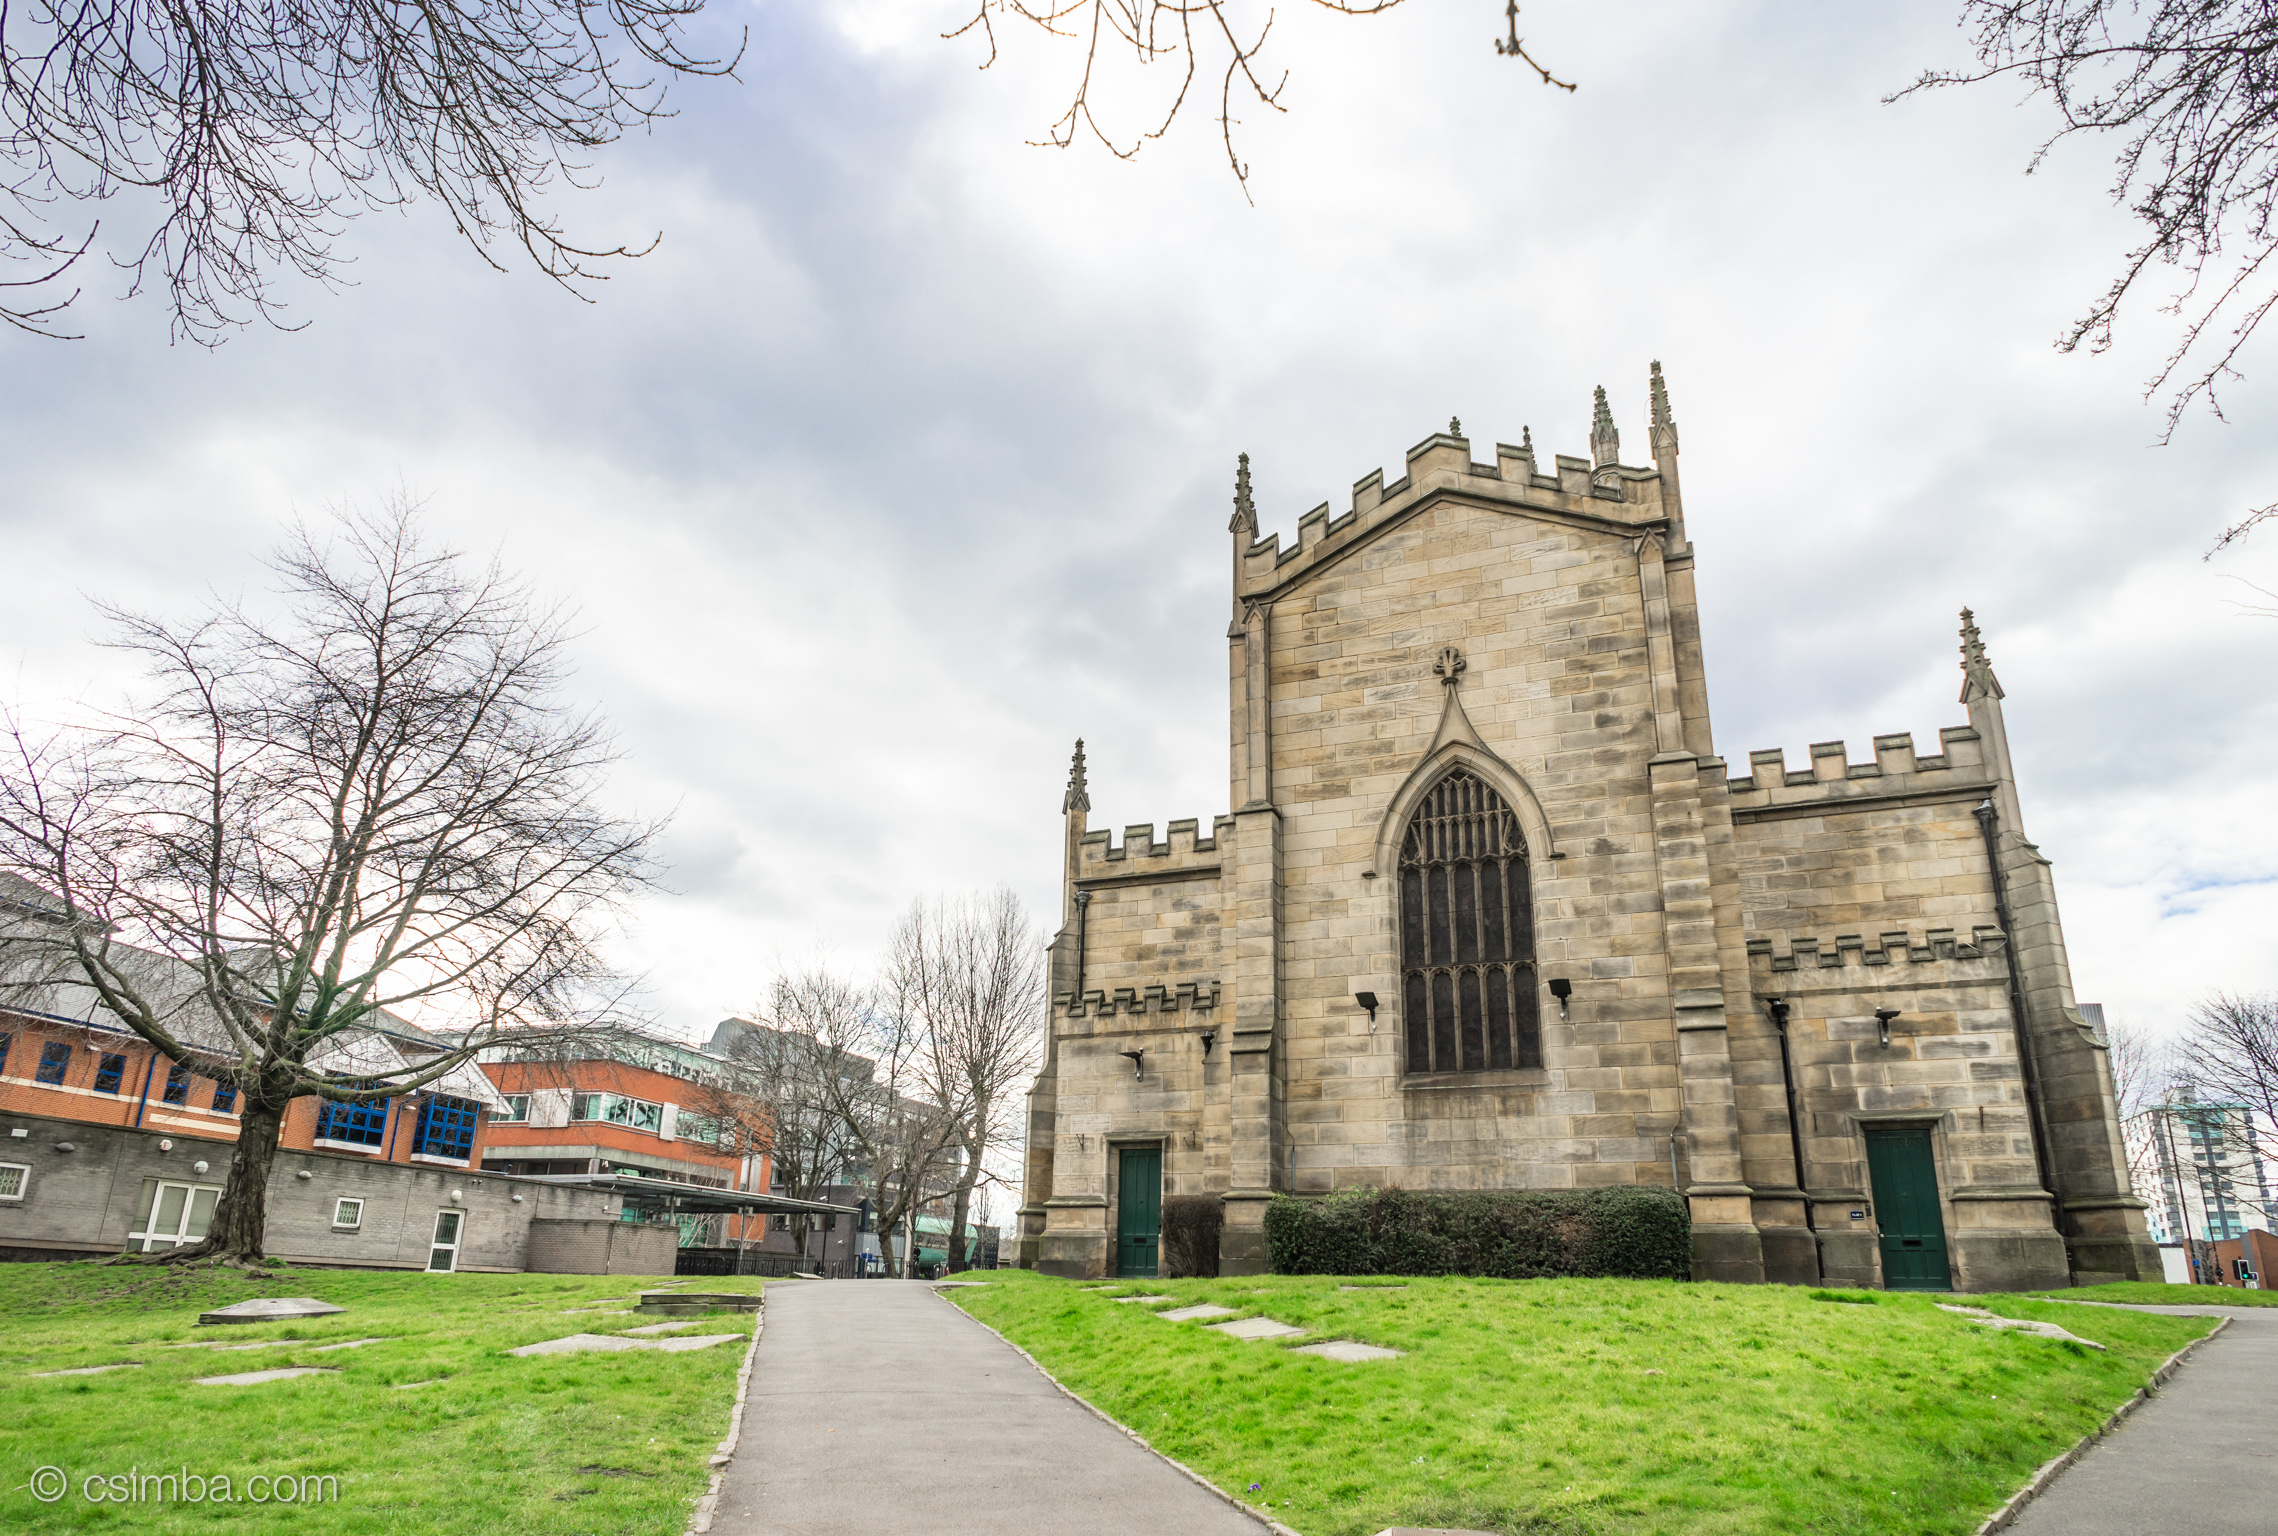 20160320 St George's Church